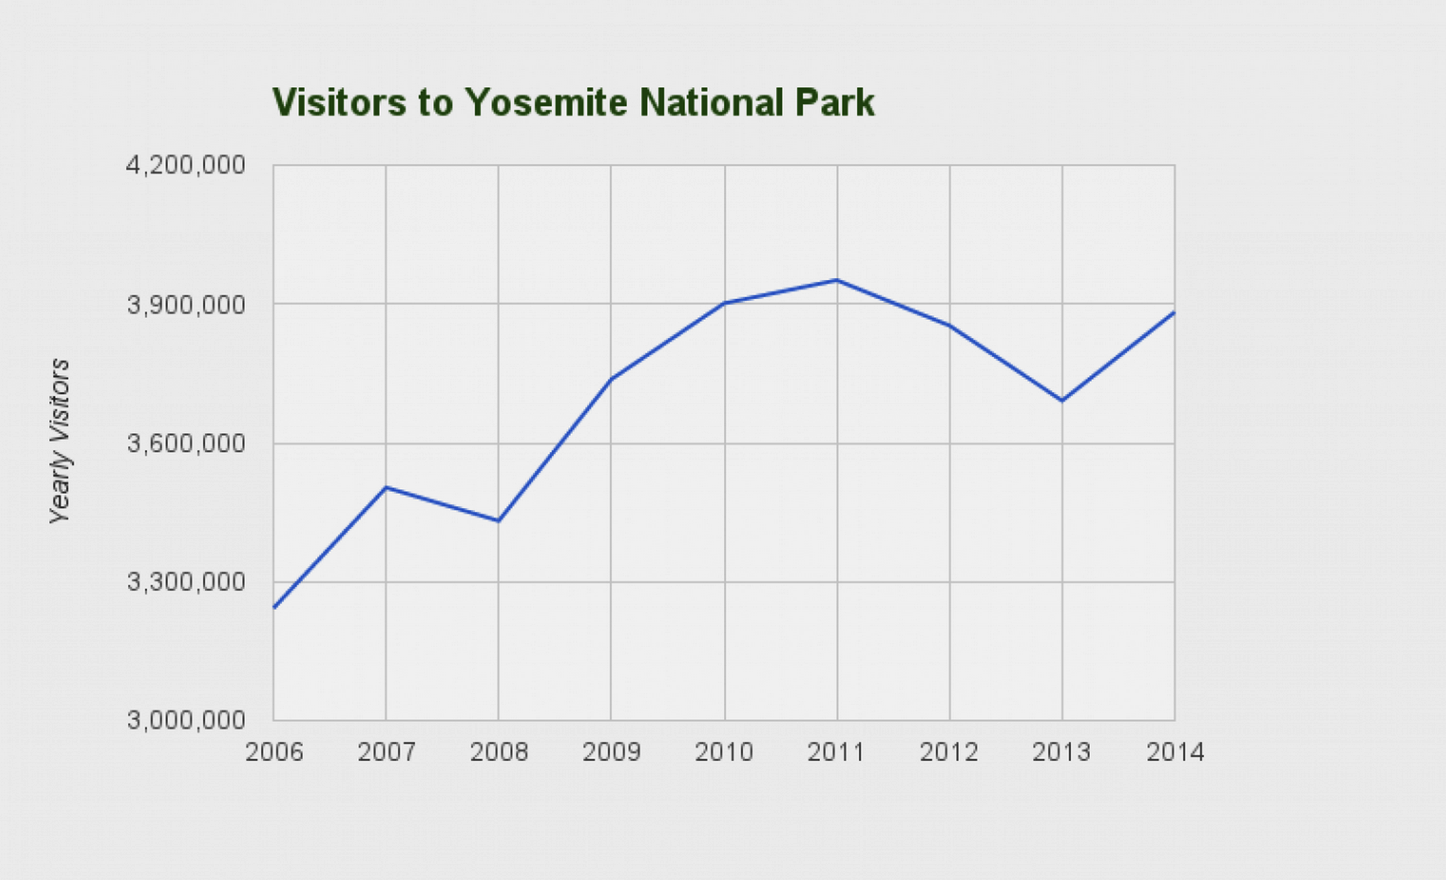 Visitors to Yosemite Park